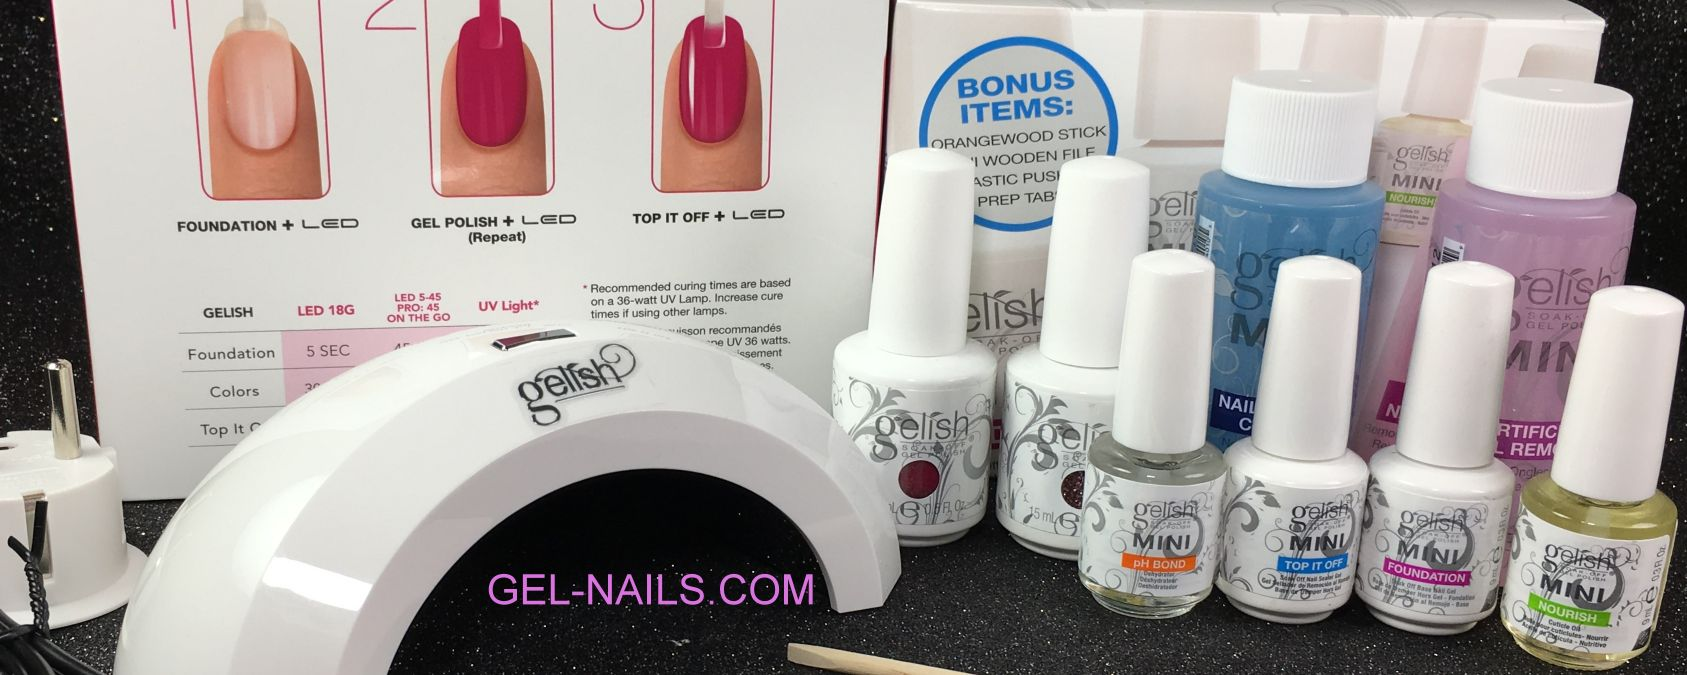 GELISH HARMONY COMPLETE STARTER BASIC KIT With Mini Pro 45 LED Light